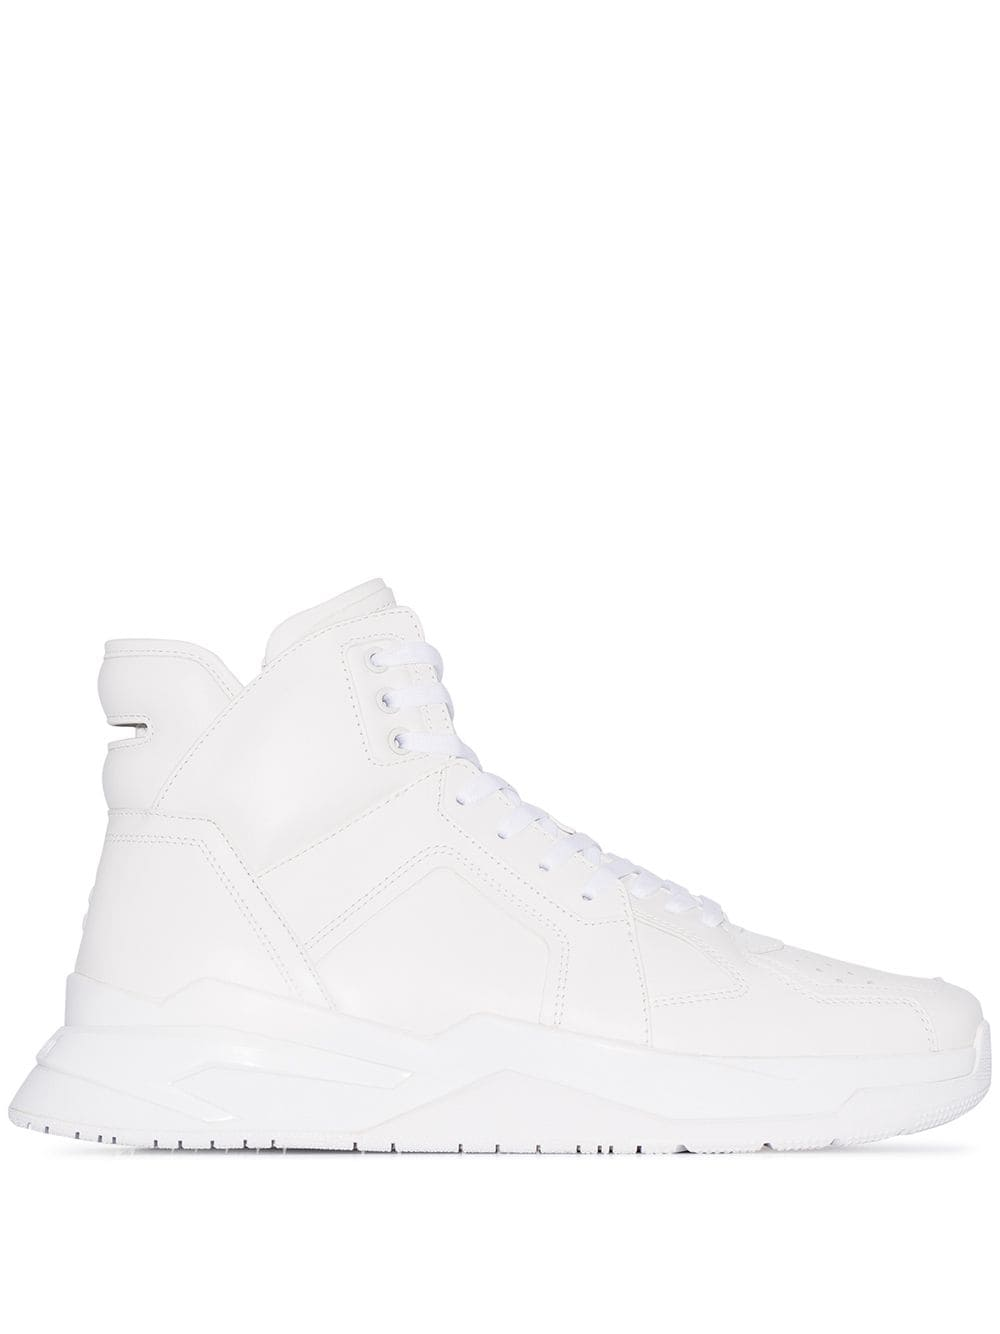 Balmain B-BALL sneakers white - Maison De Fashion